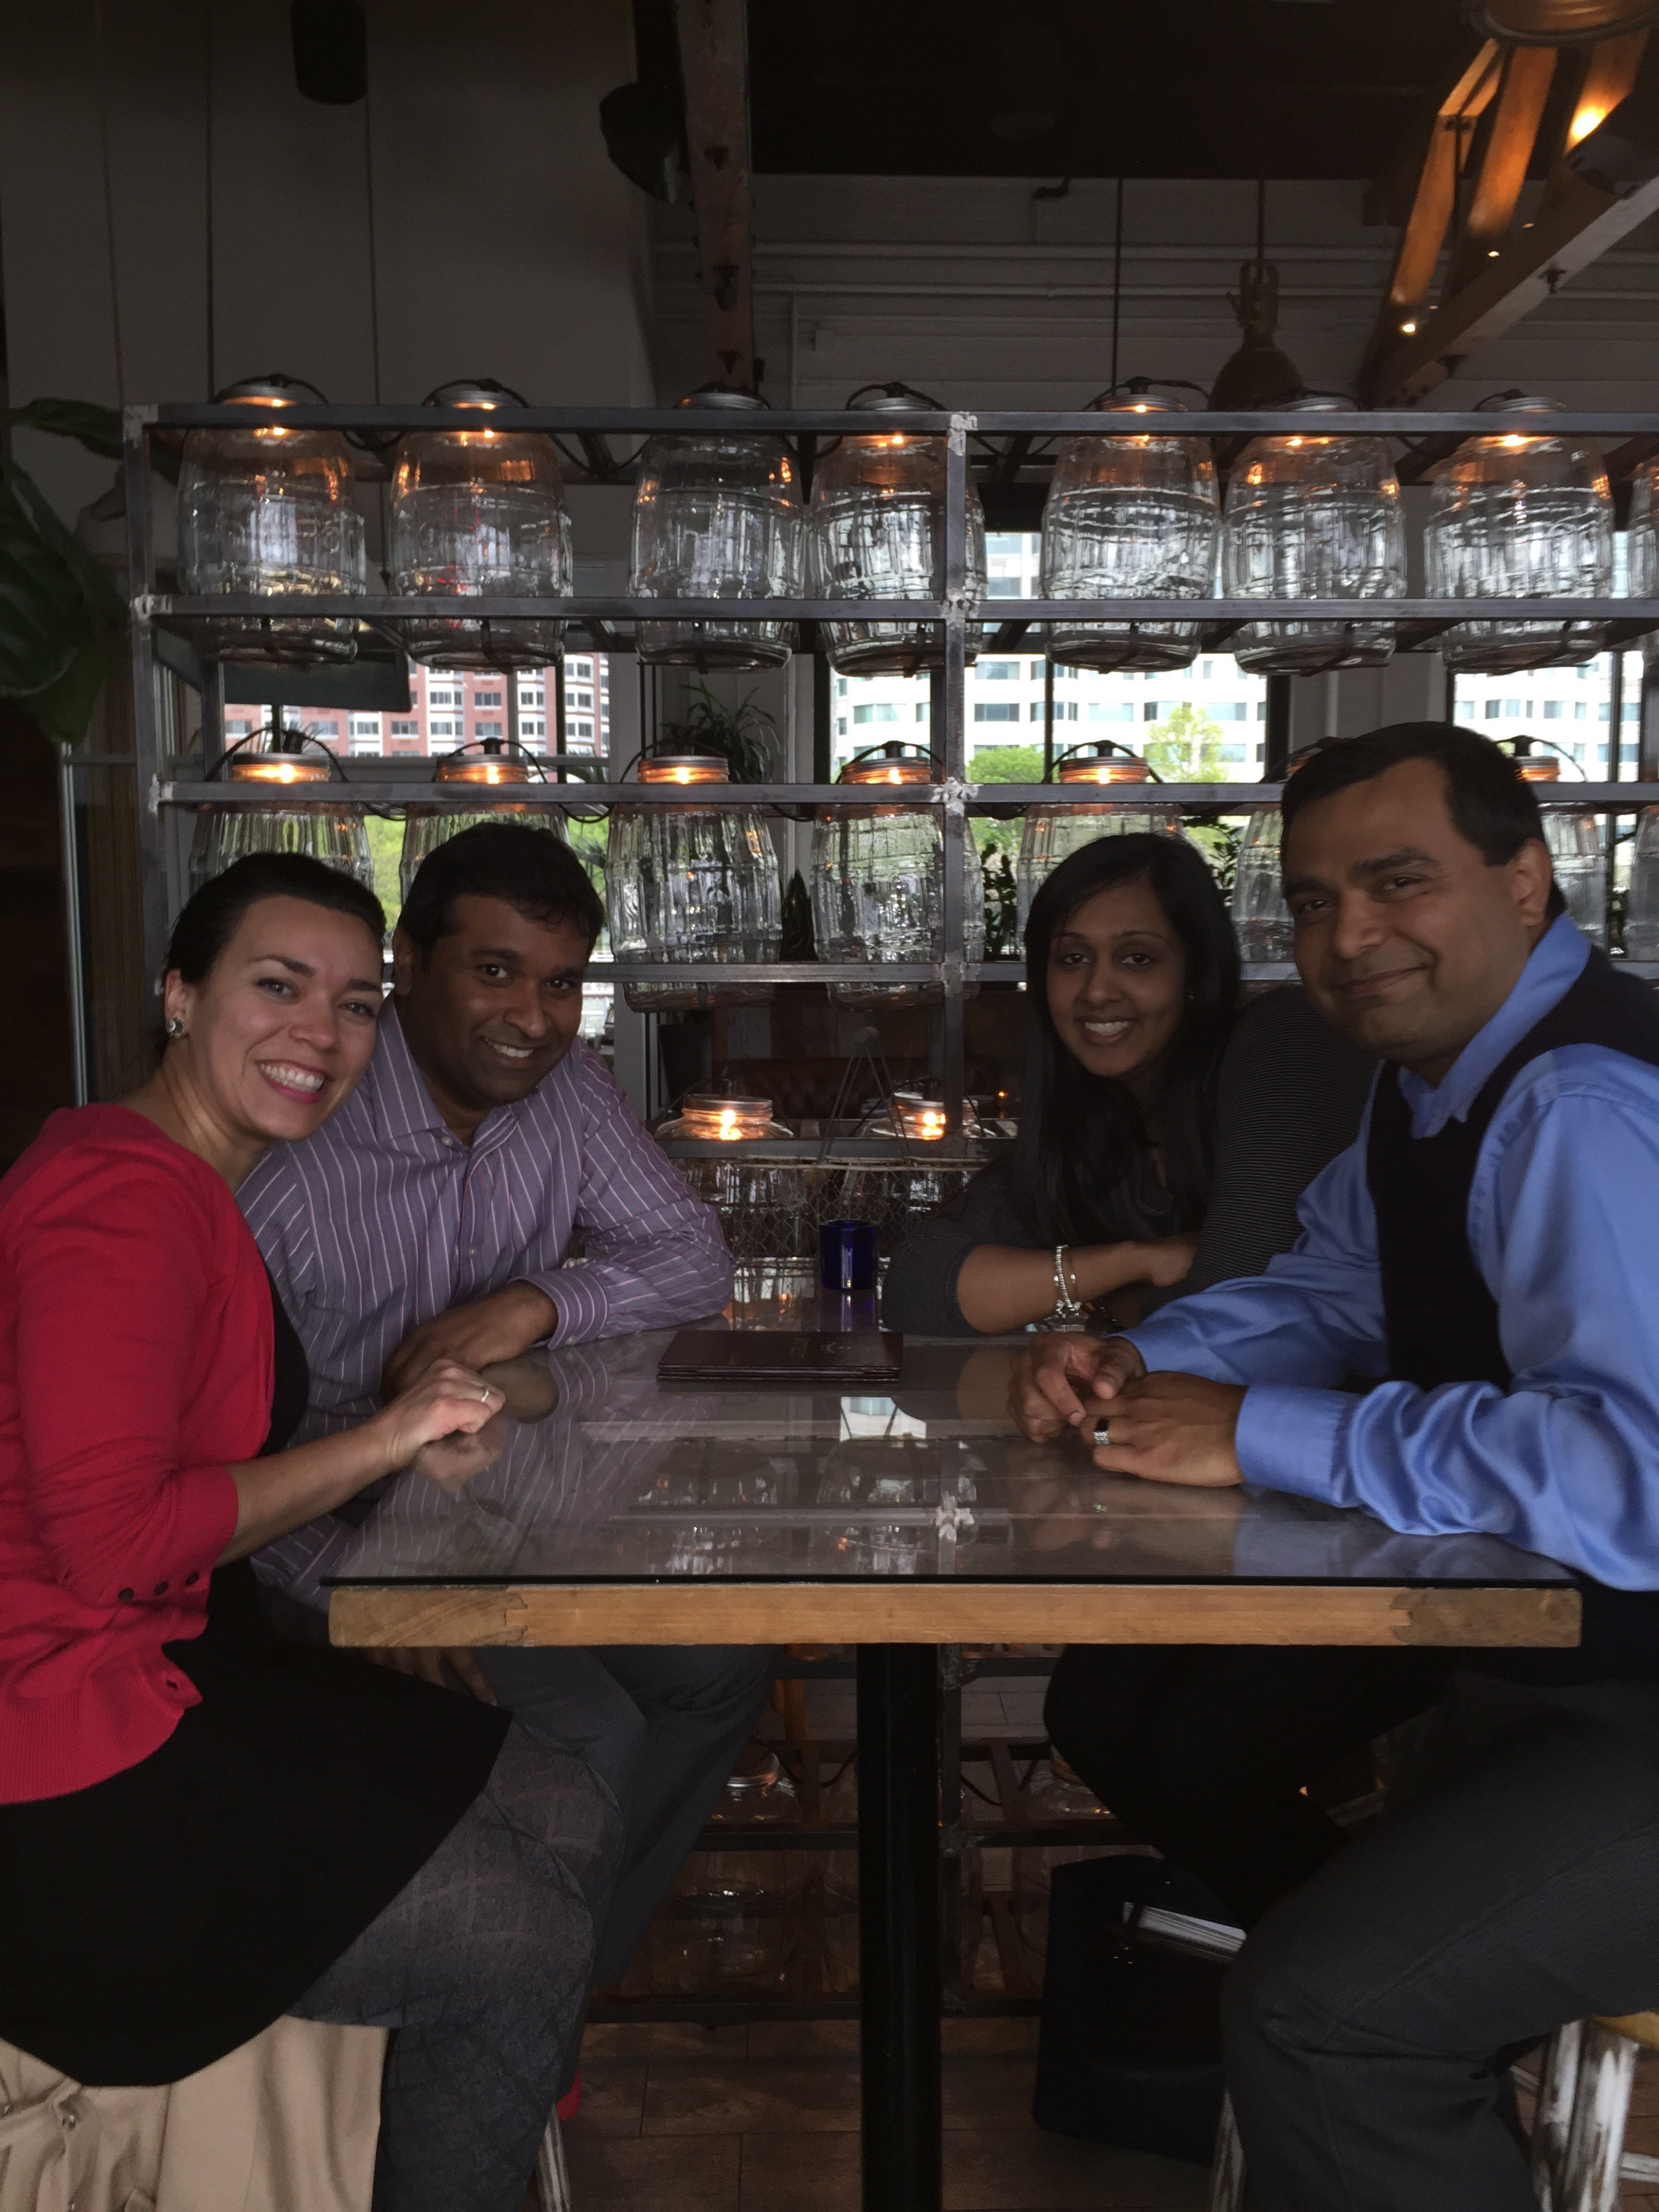 Drea got to meet up with coworkers to say farewell to one who is moving to LA. This was her first group of coworkers from almost seven years ago when she first started at JPMC and would commute to Jersey City.